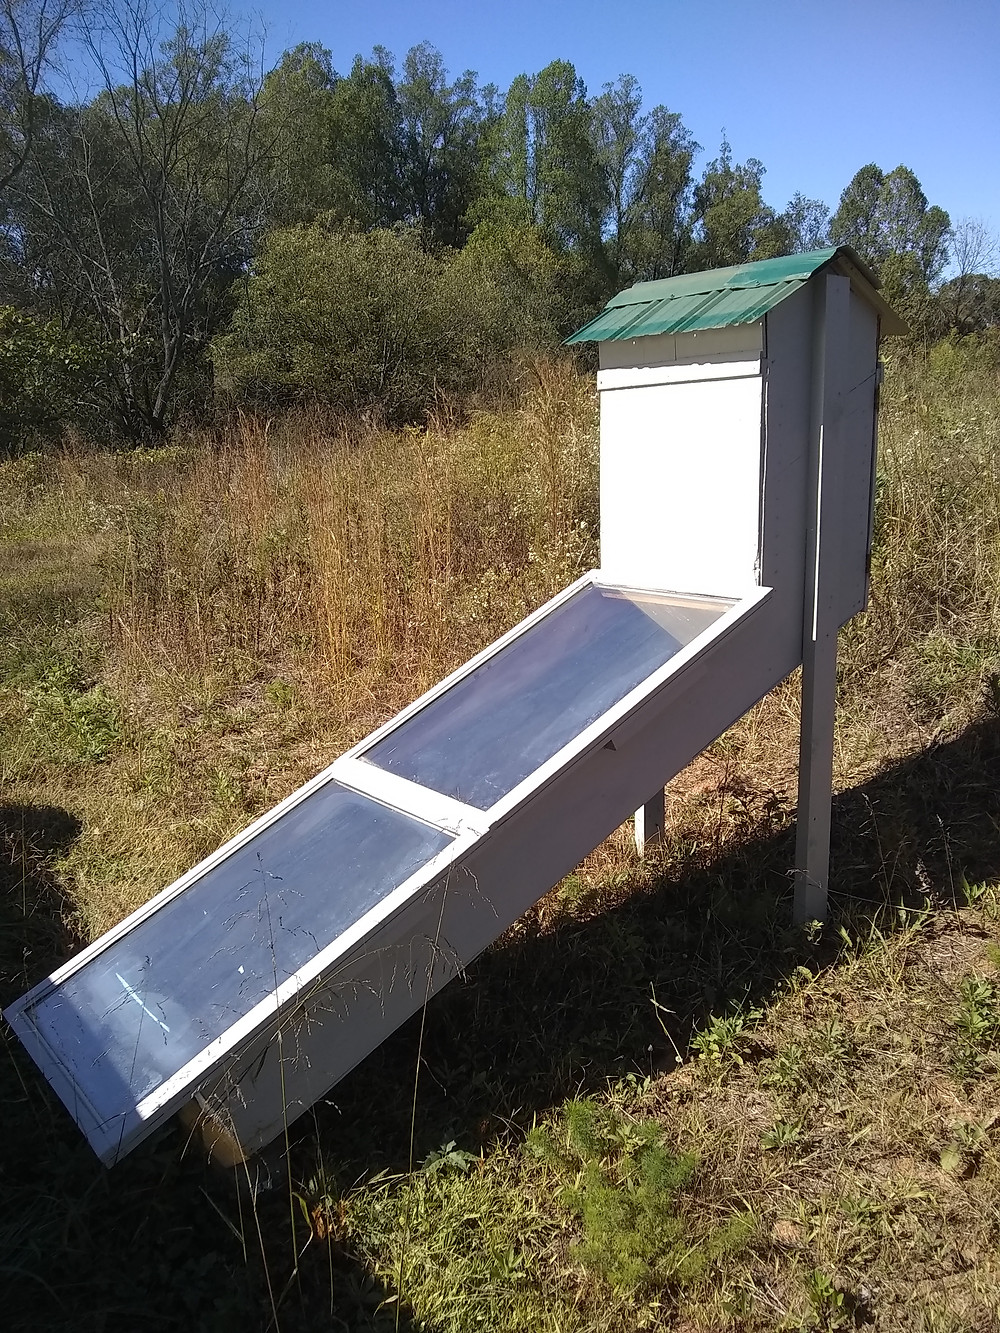 Home-made solar dehydrator